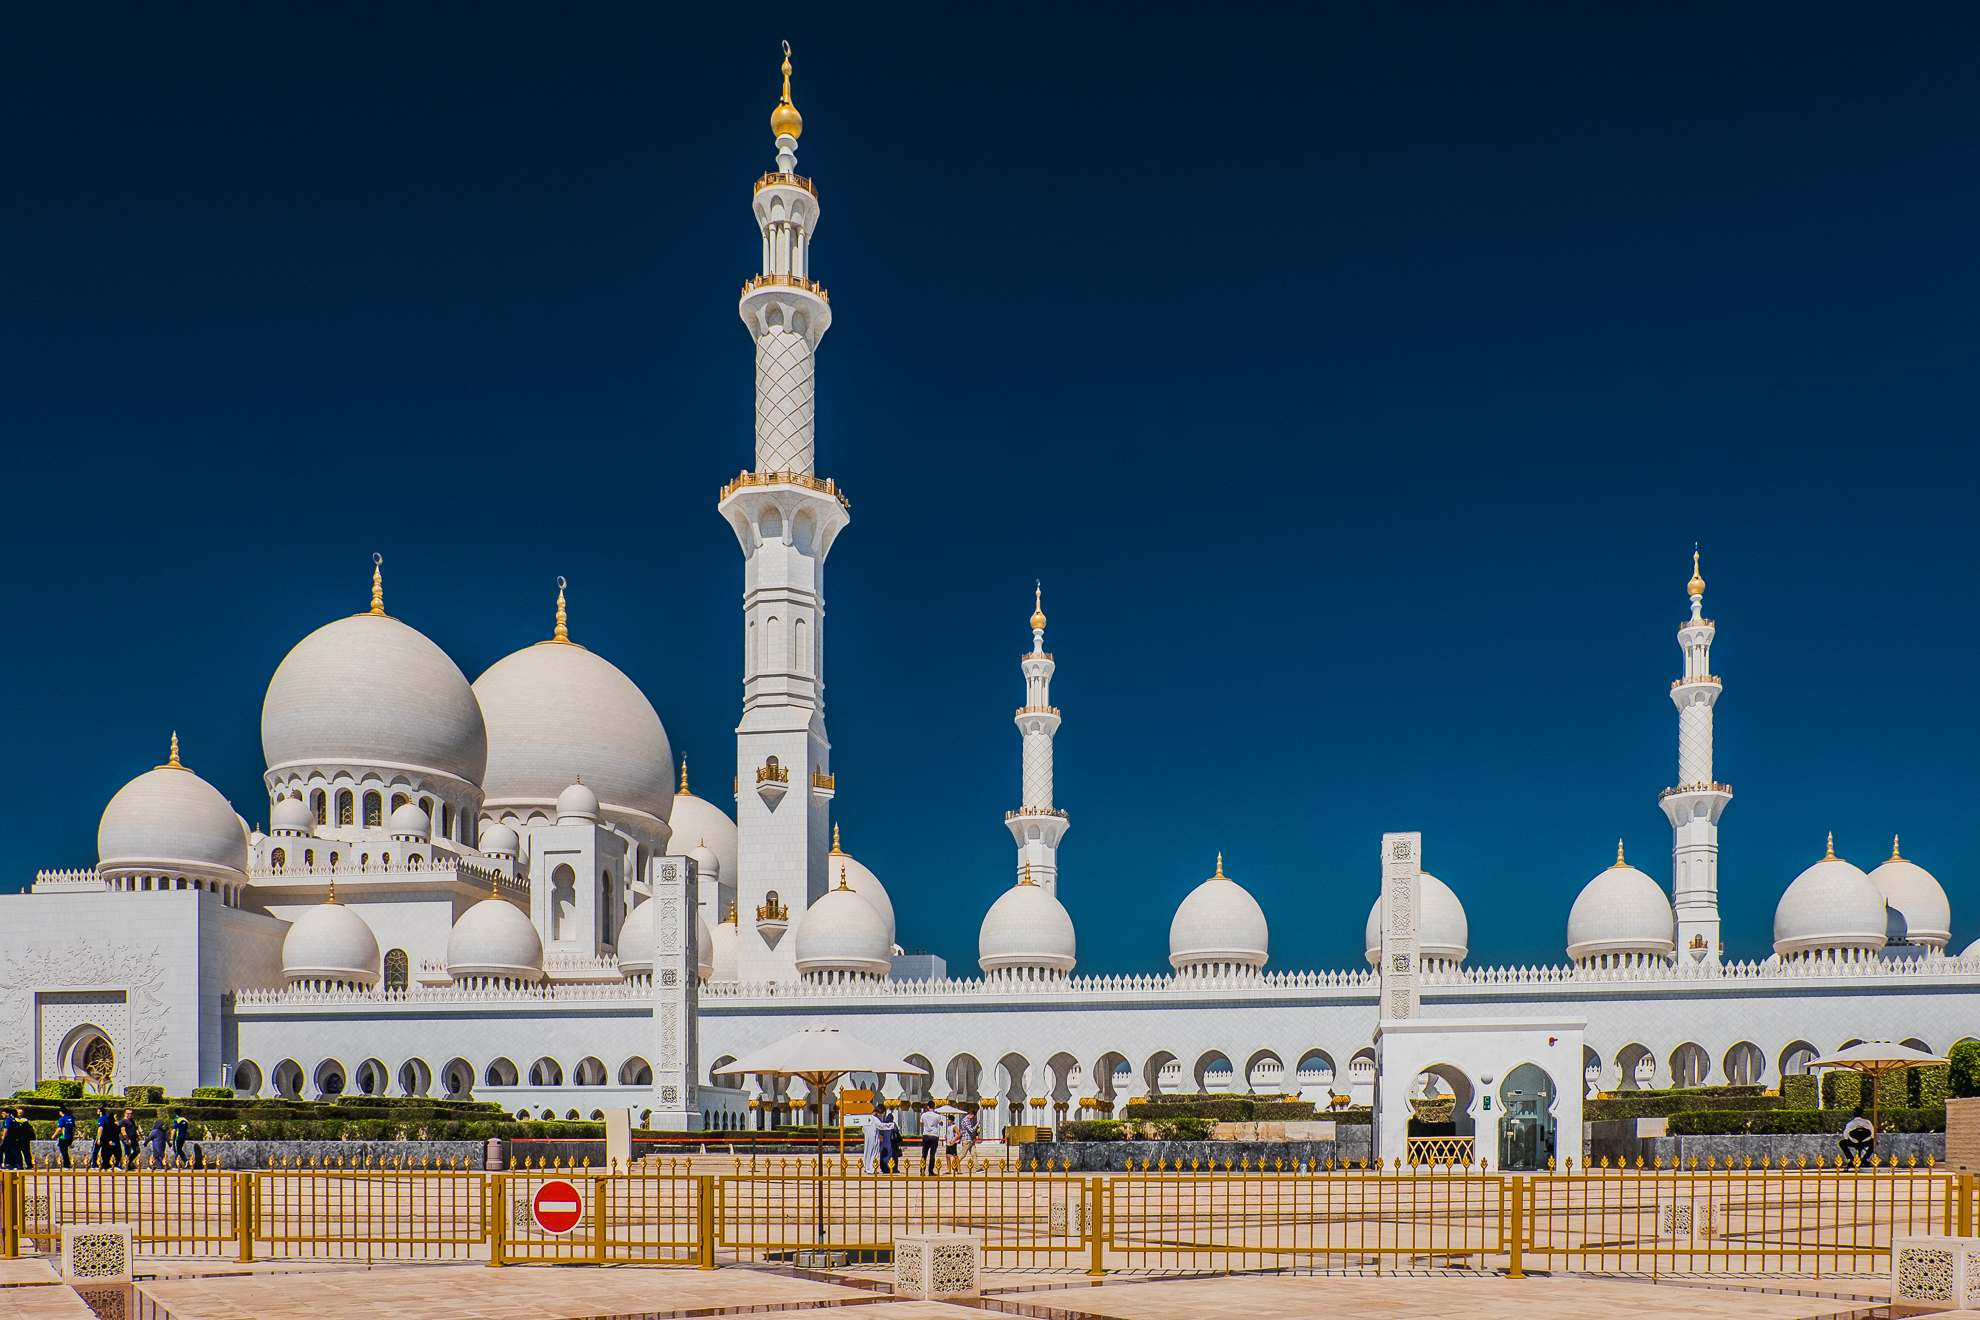 sheikh zayed grand mosque3 Picturesque Sheikh Zayed Grand Mosque in Abu Dhabi